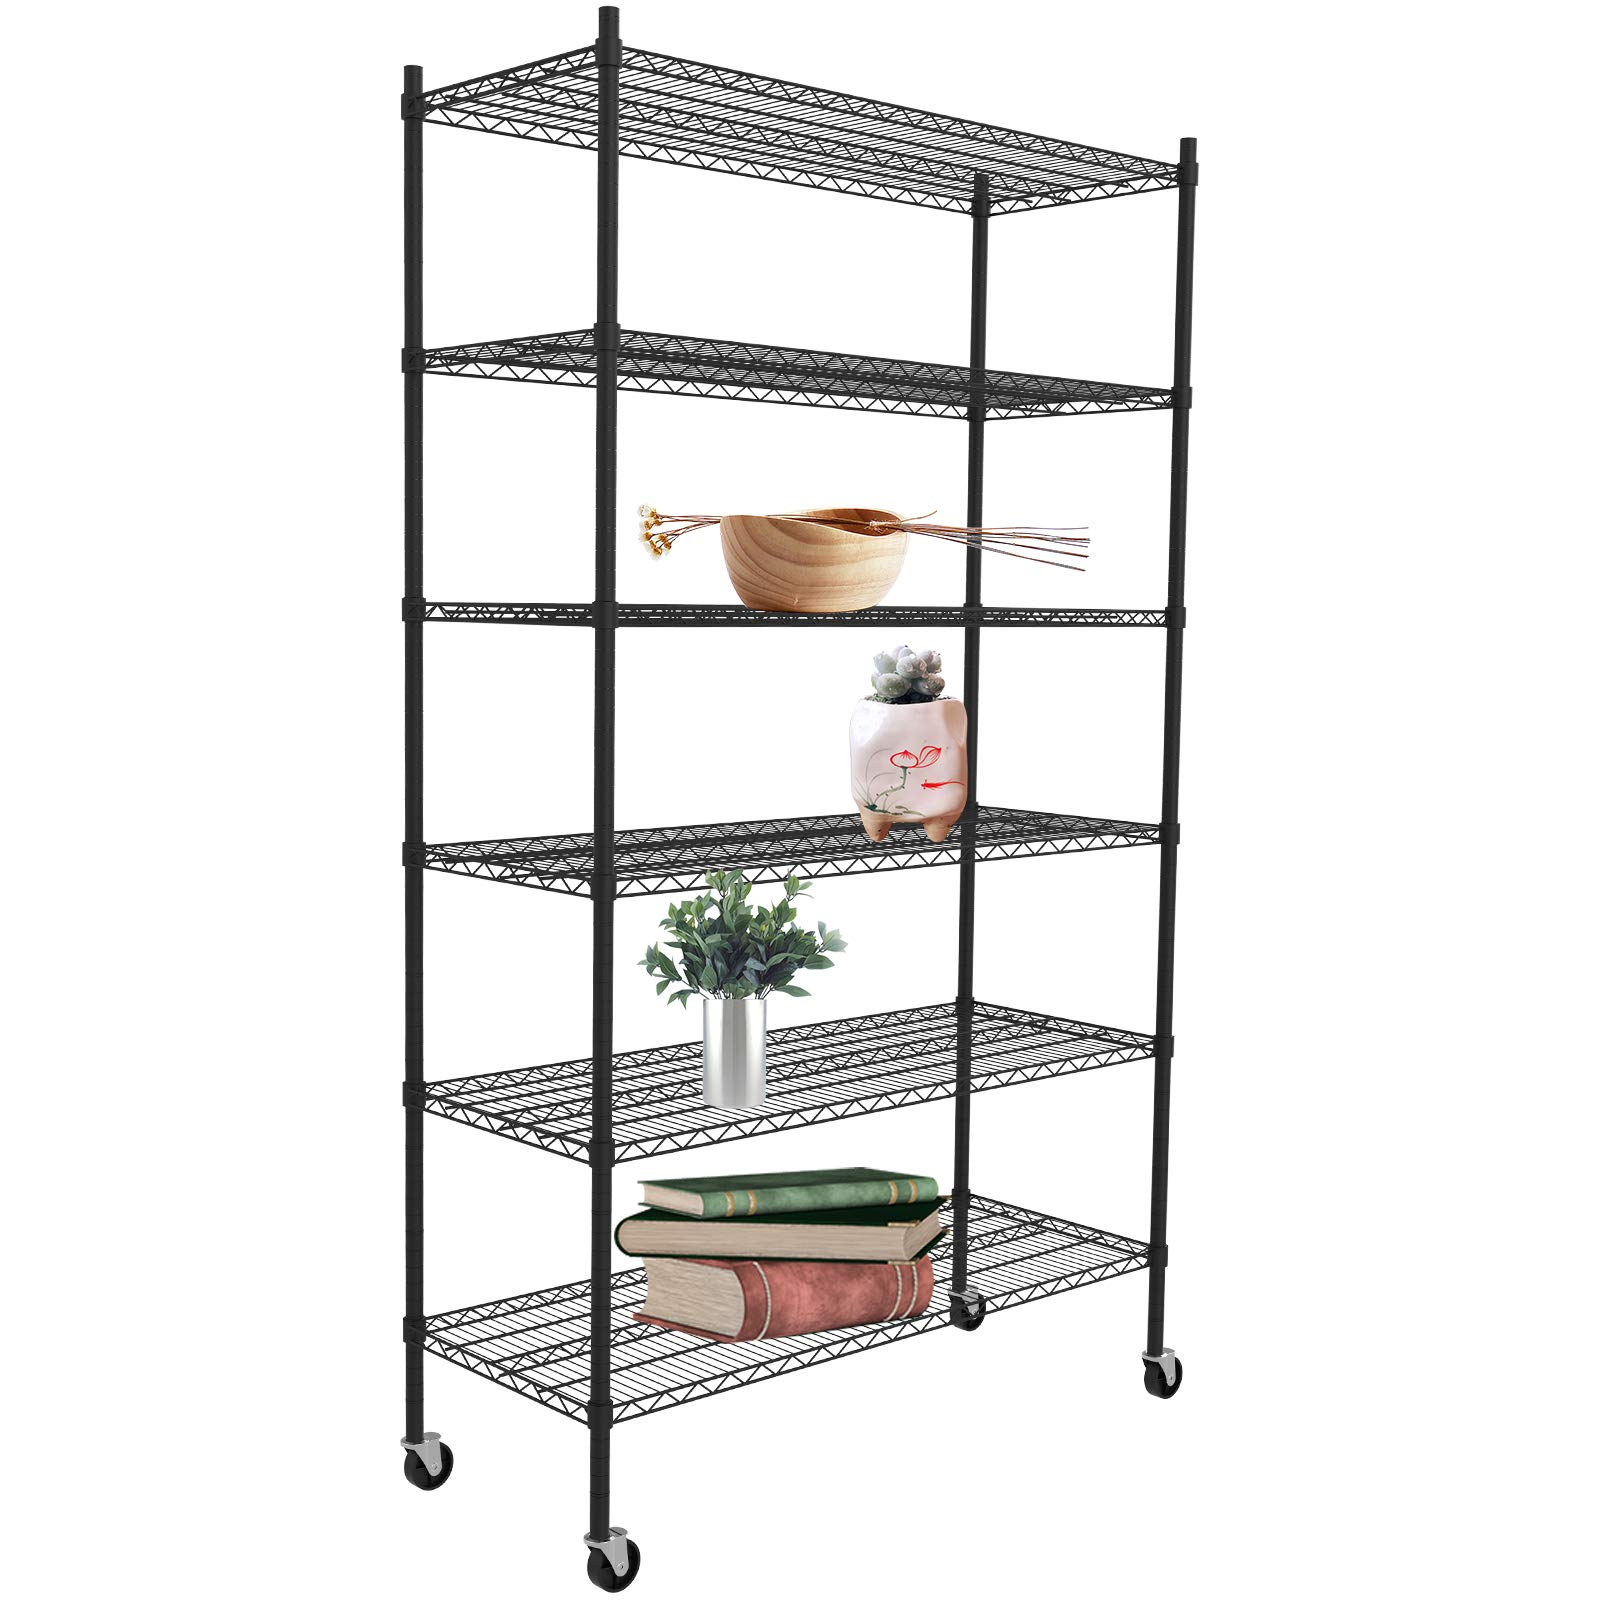 SUNCOO 6 Tier 82''H Strengthen Steel Utility Shelf Metal Organizer Wire Rack Shelfing Storge Unit with Stiffeners Wire Shelves with wheels Home Kitchen Office Garage by SUNCOO